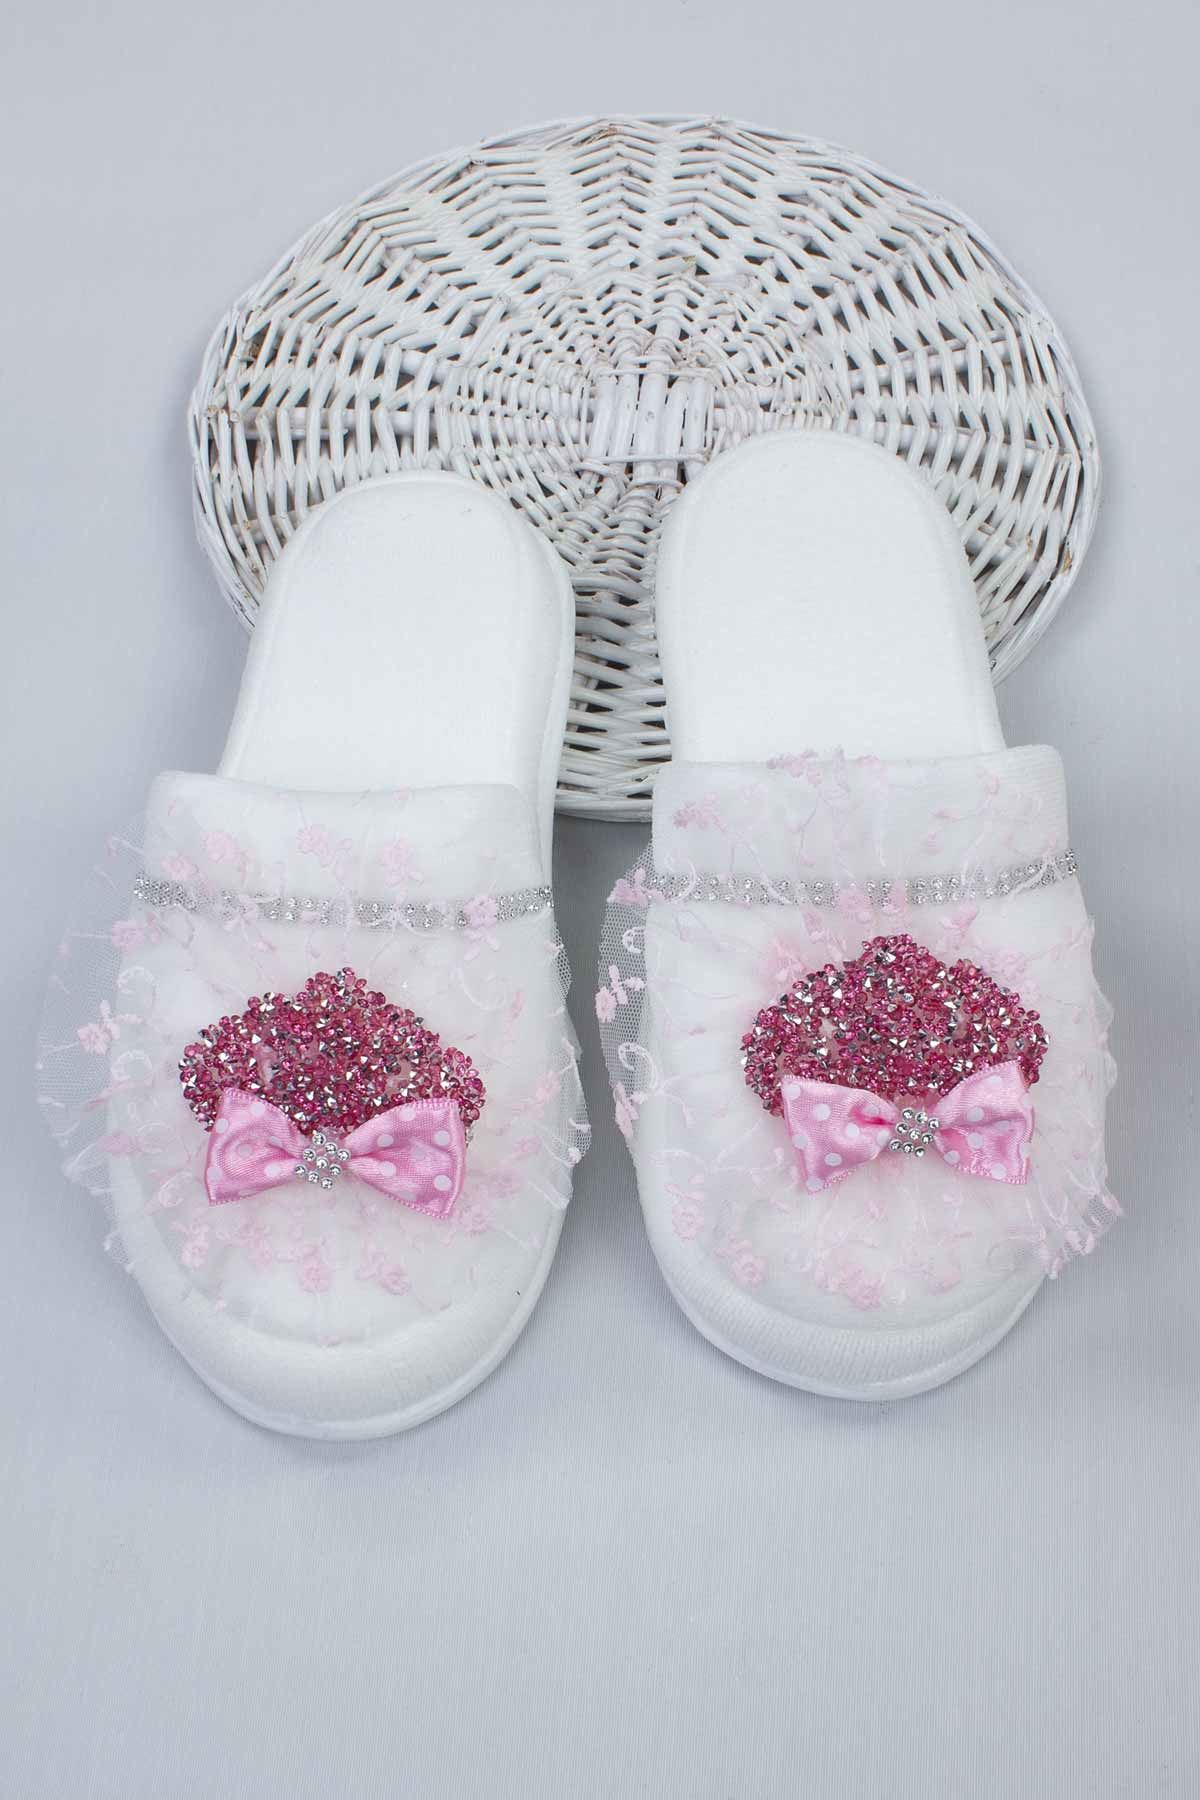 Fuchsia Puerperal Crown Slippers and Baby Booties Bandana Set